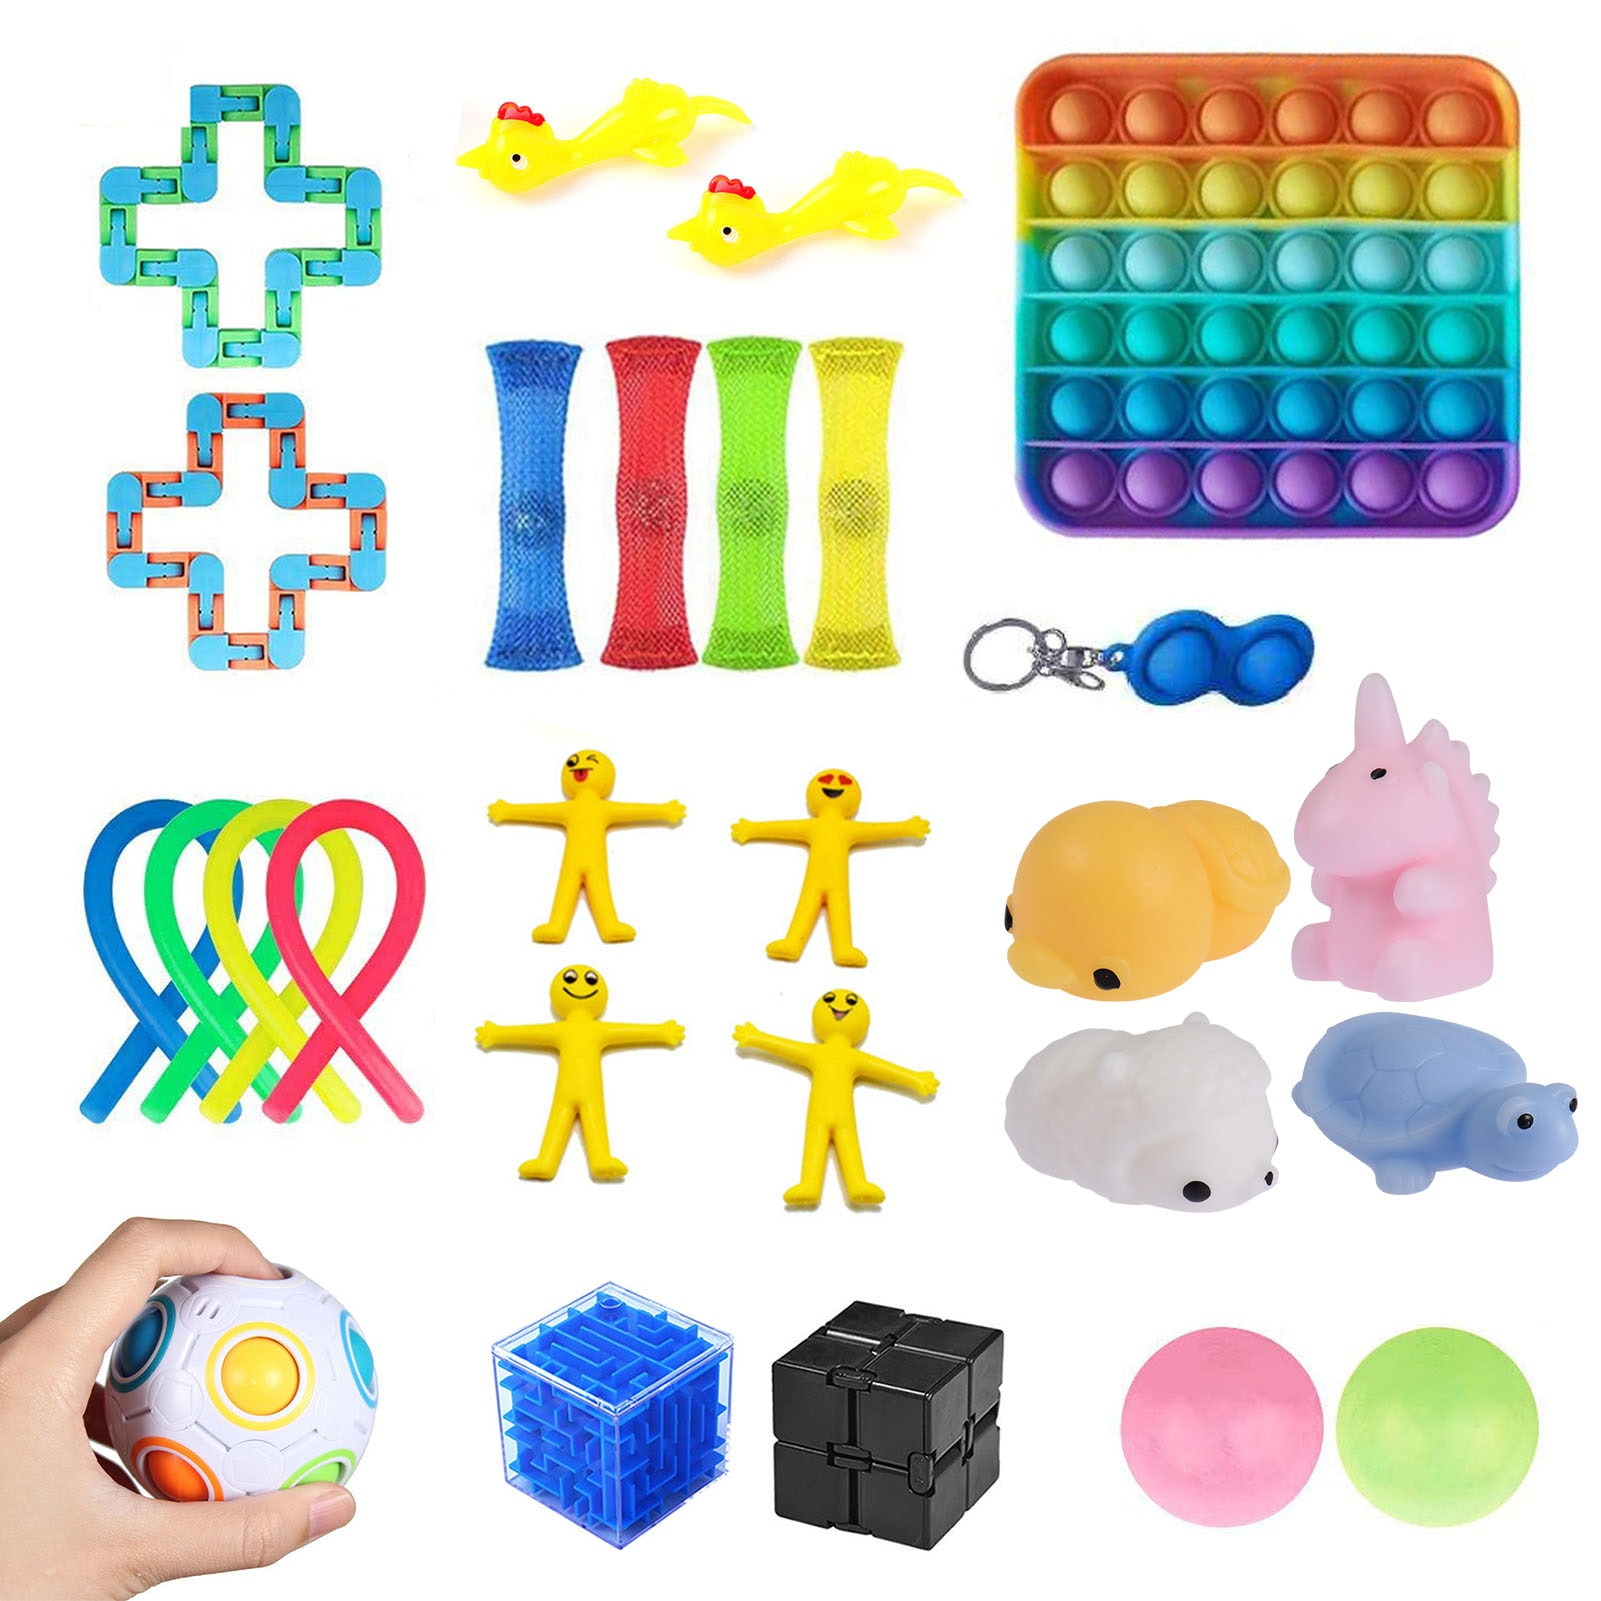 24PCS Sensory Fidget Toy Rainbow Food-grade Silicone Stress Relief Anti-Anxiety Toys For Children Adults enlarge